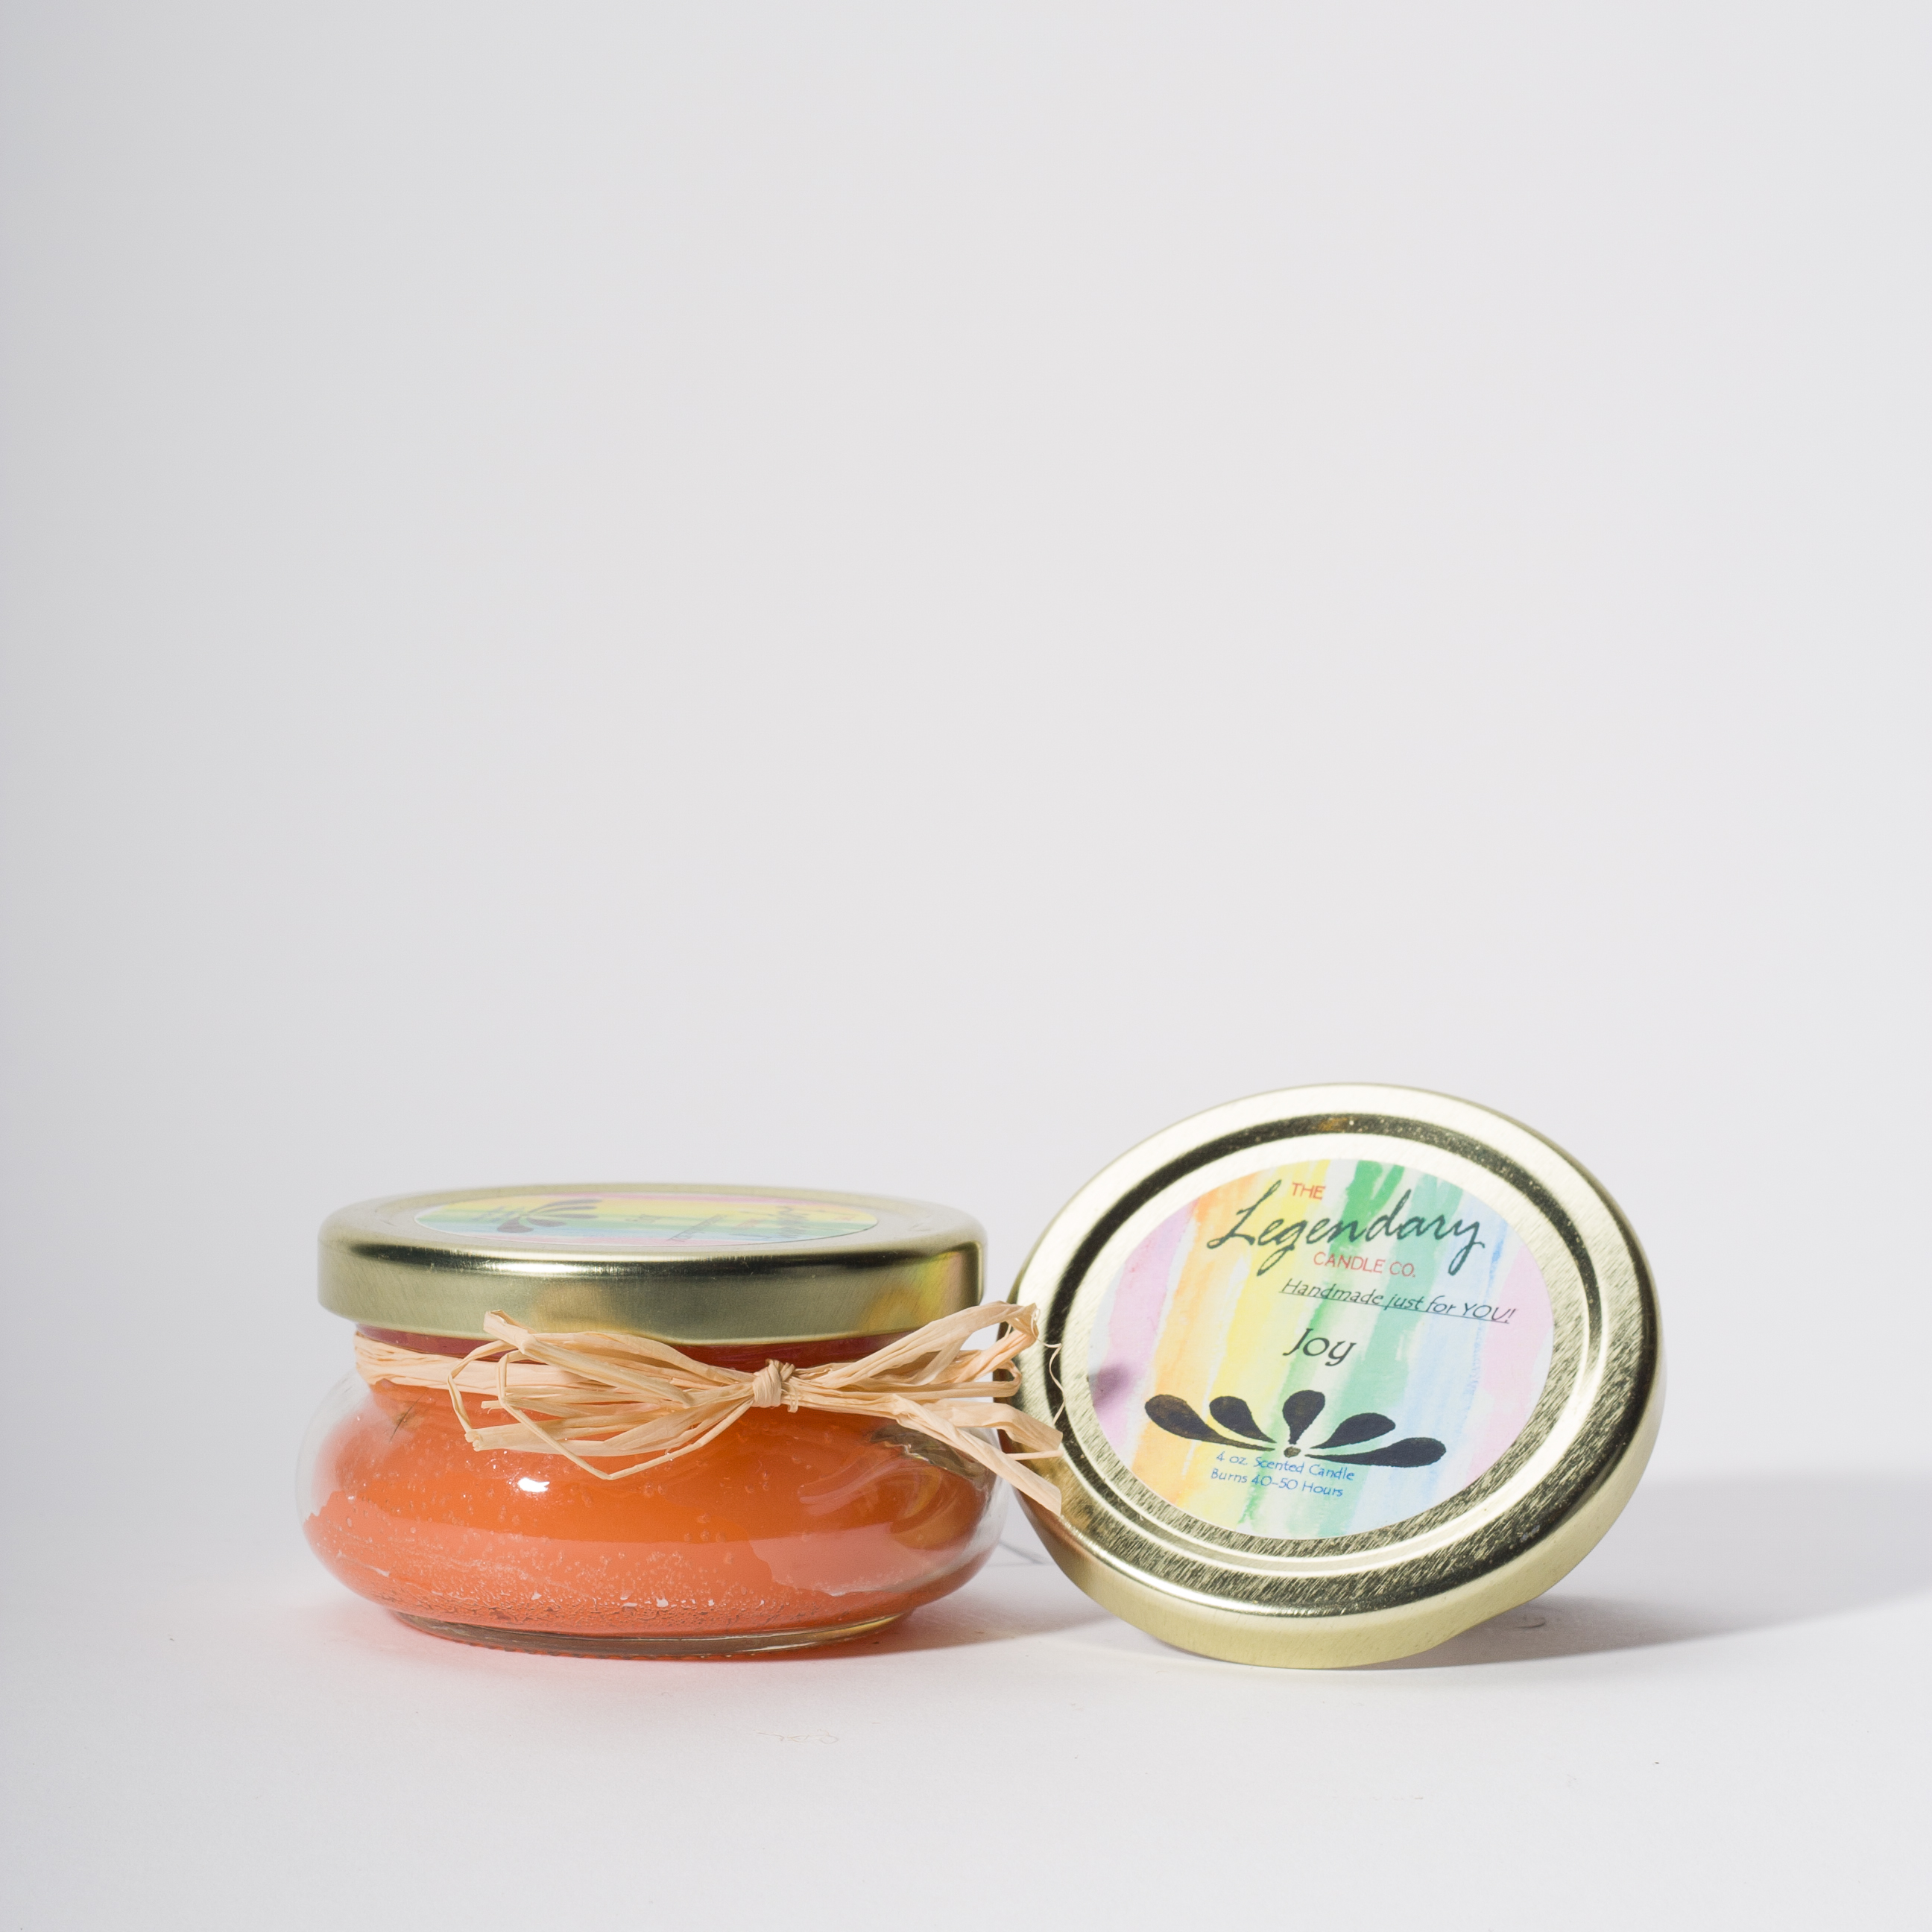 4 Ounce Joy Scented Tureen Jar Candle